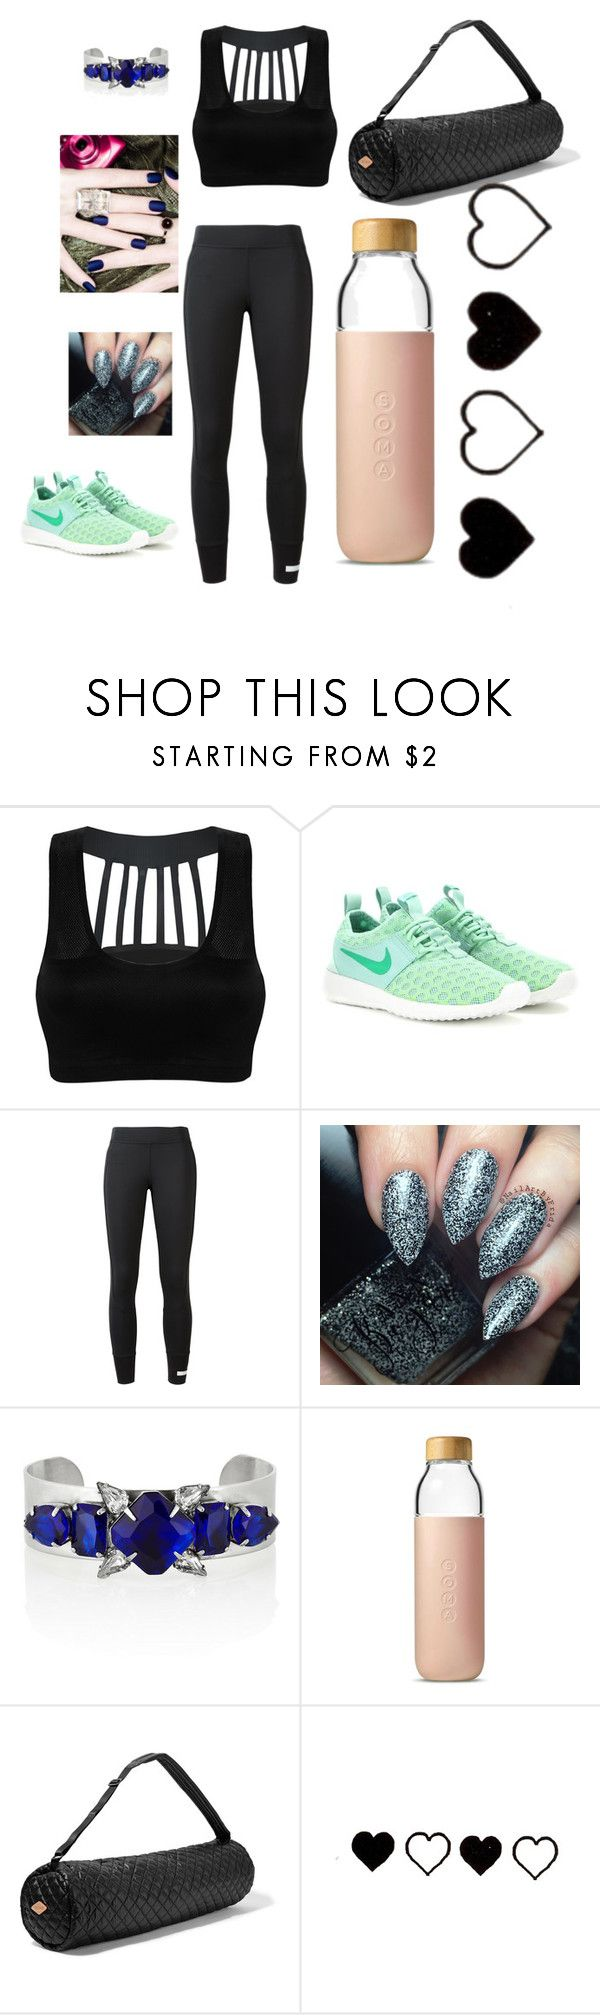 """Hopeful"" by gabrielle1000love ❤ liked on Polyvore featuring NIKE, adidas, Noir Jewelry, Soma and M Z Wallace"